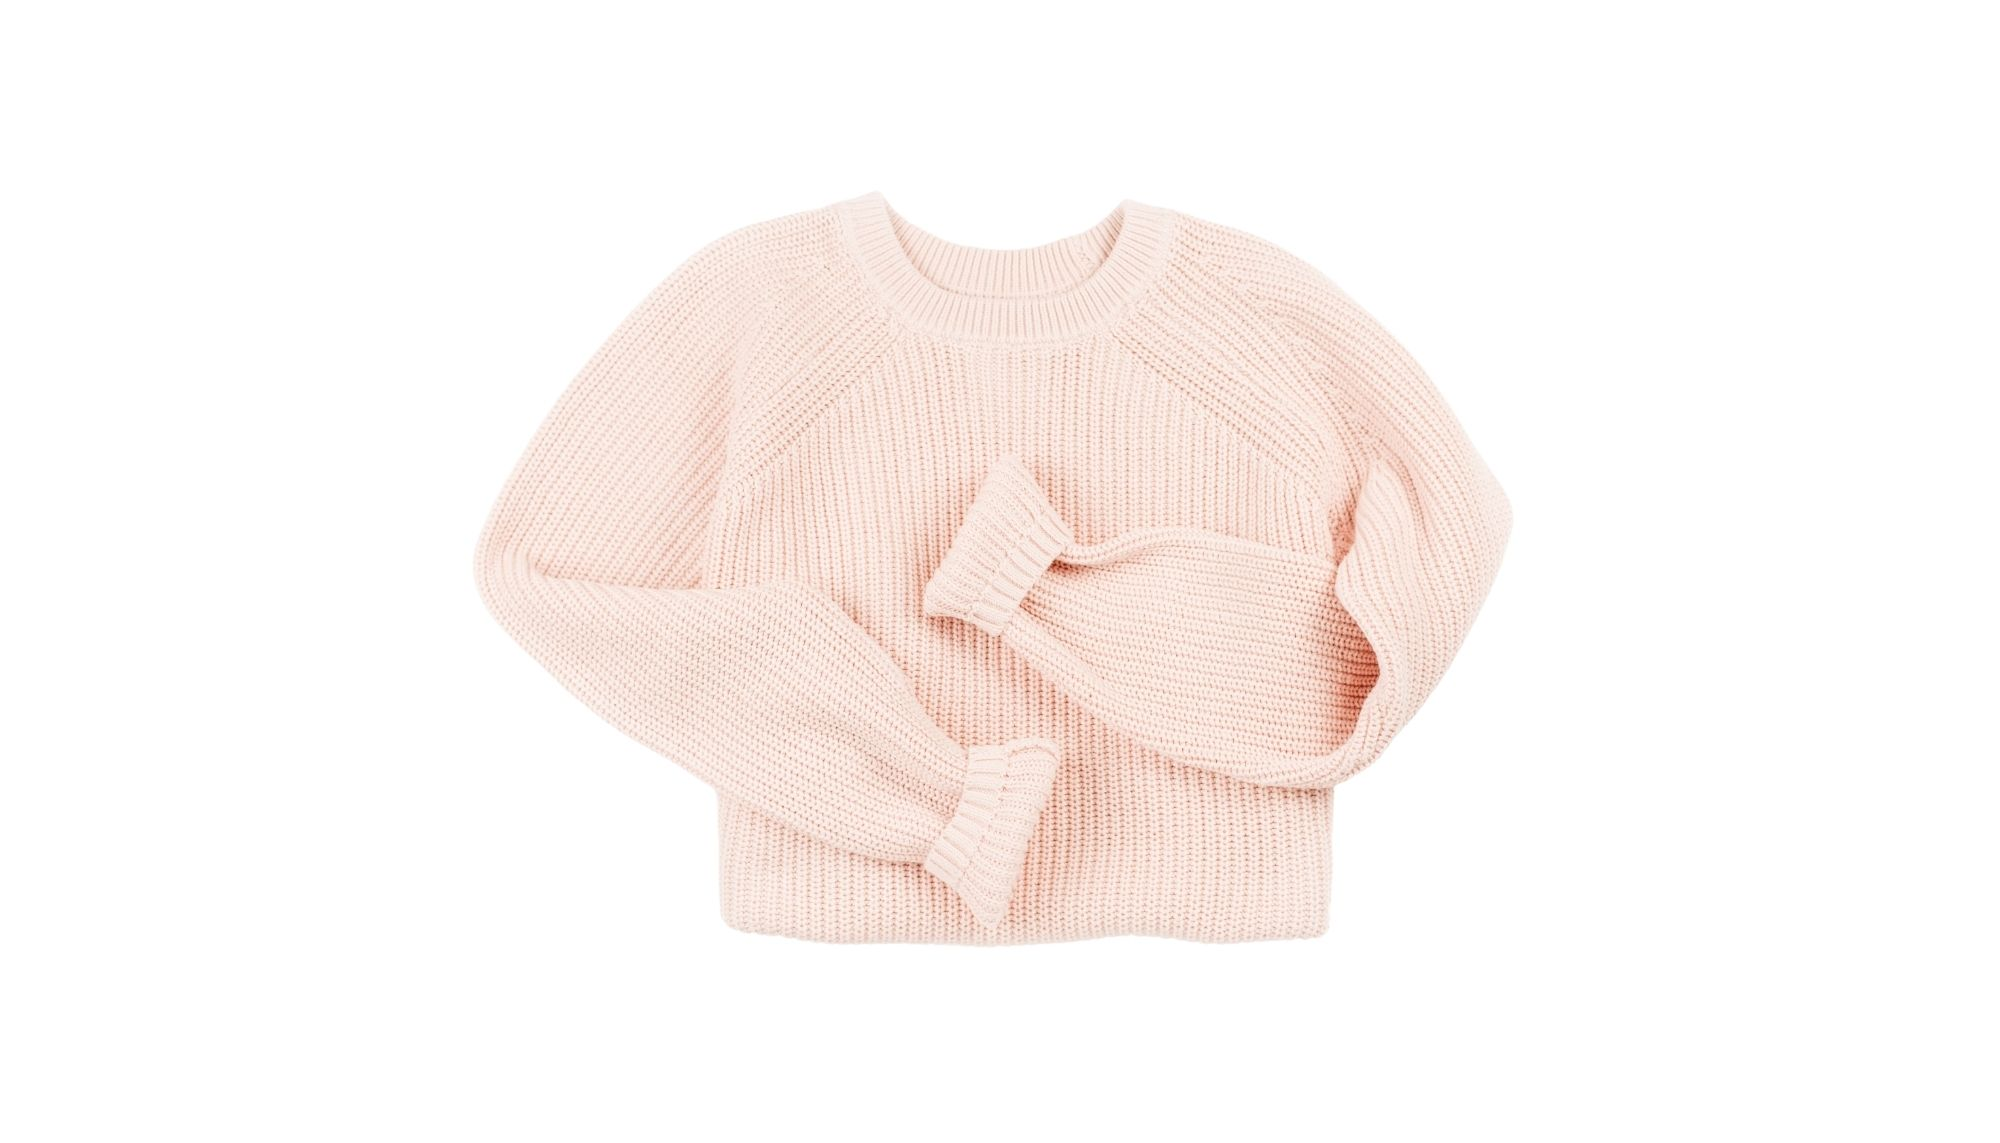 16 Best Sweater Brands for Cozy, Quality Sweaters